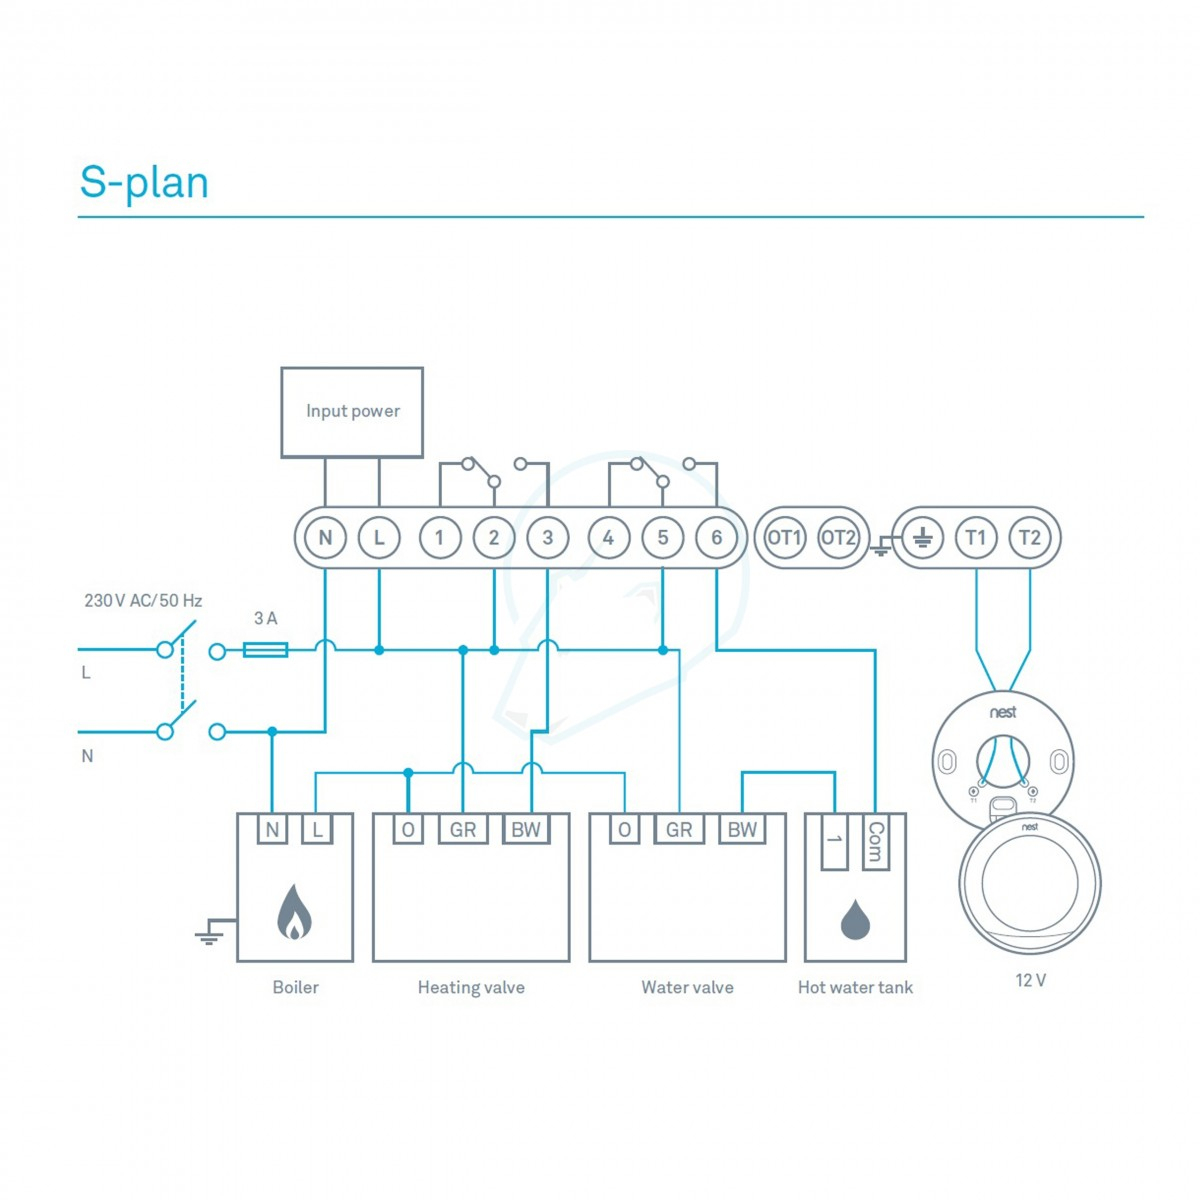 Nest 3Rd Generation Wiring Diagram Uk - Simple Wiring Diagram - Nest Water Wiring Diagram